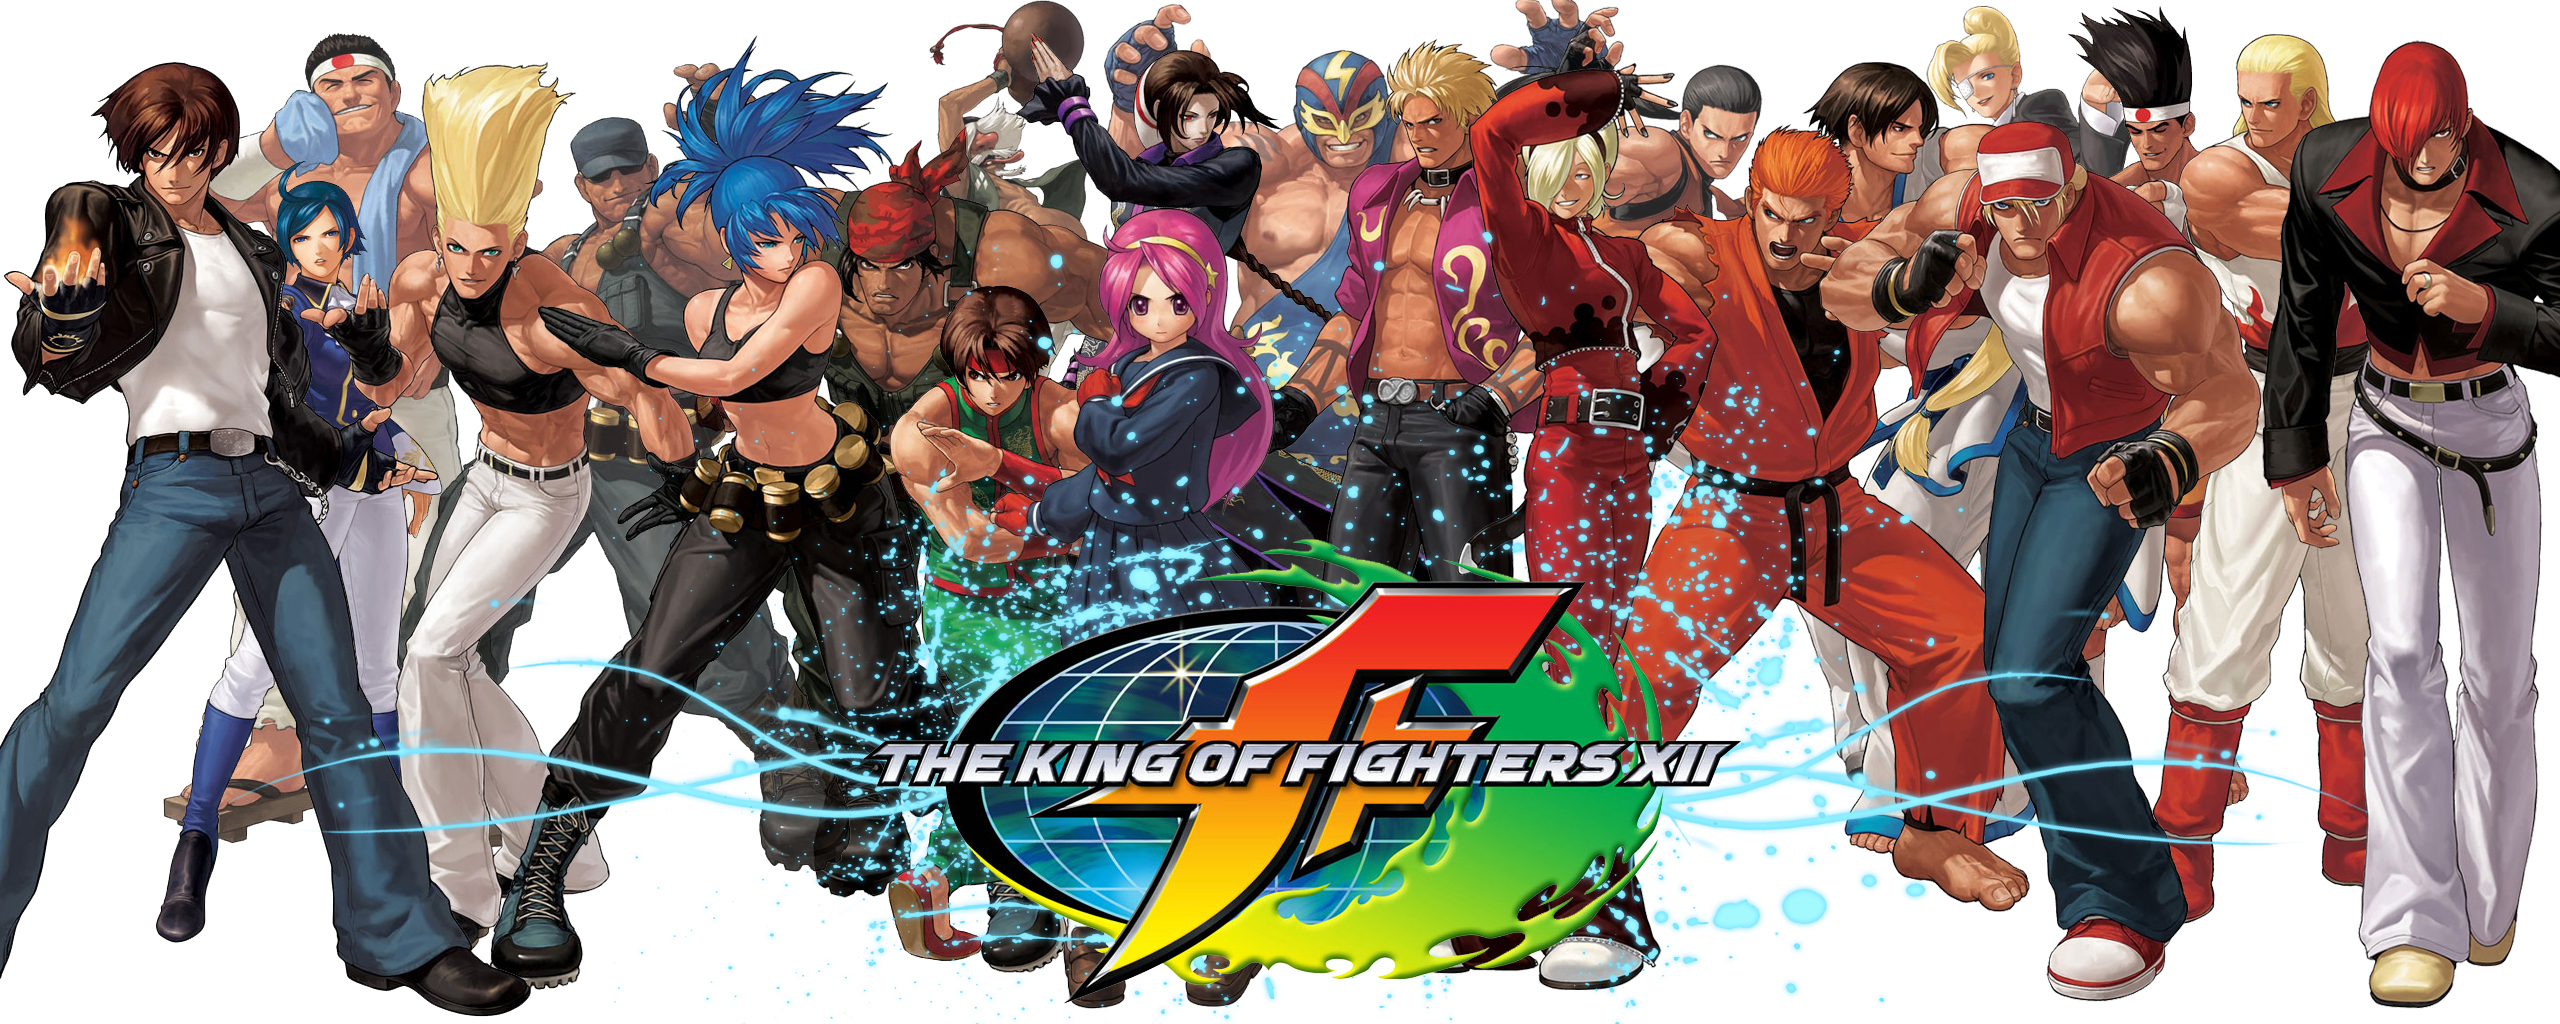 Theme The king of fighter